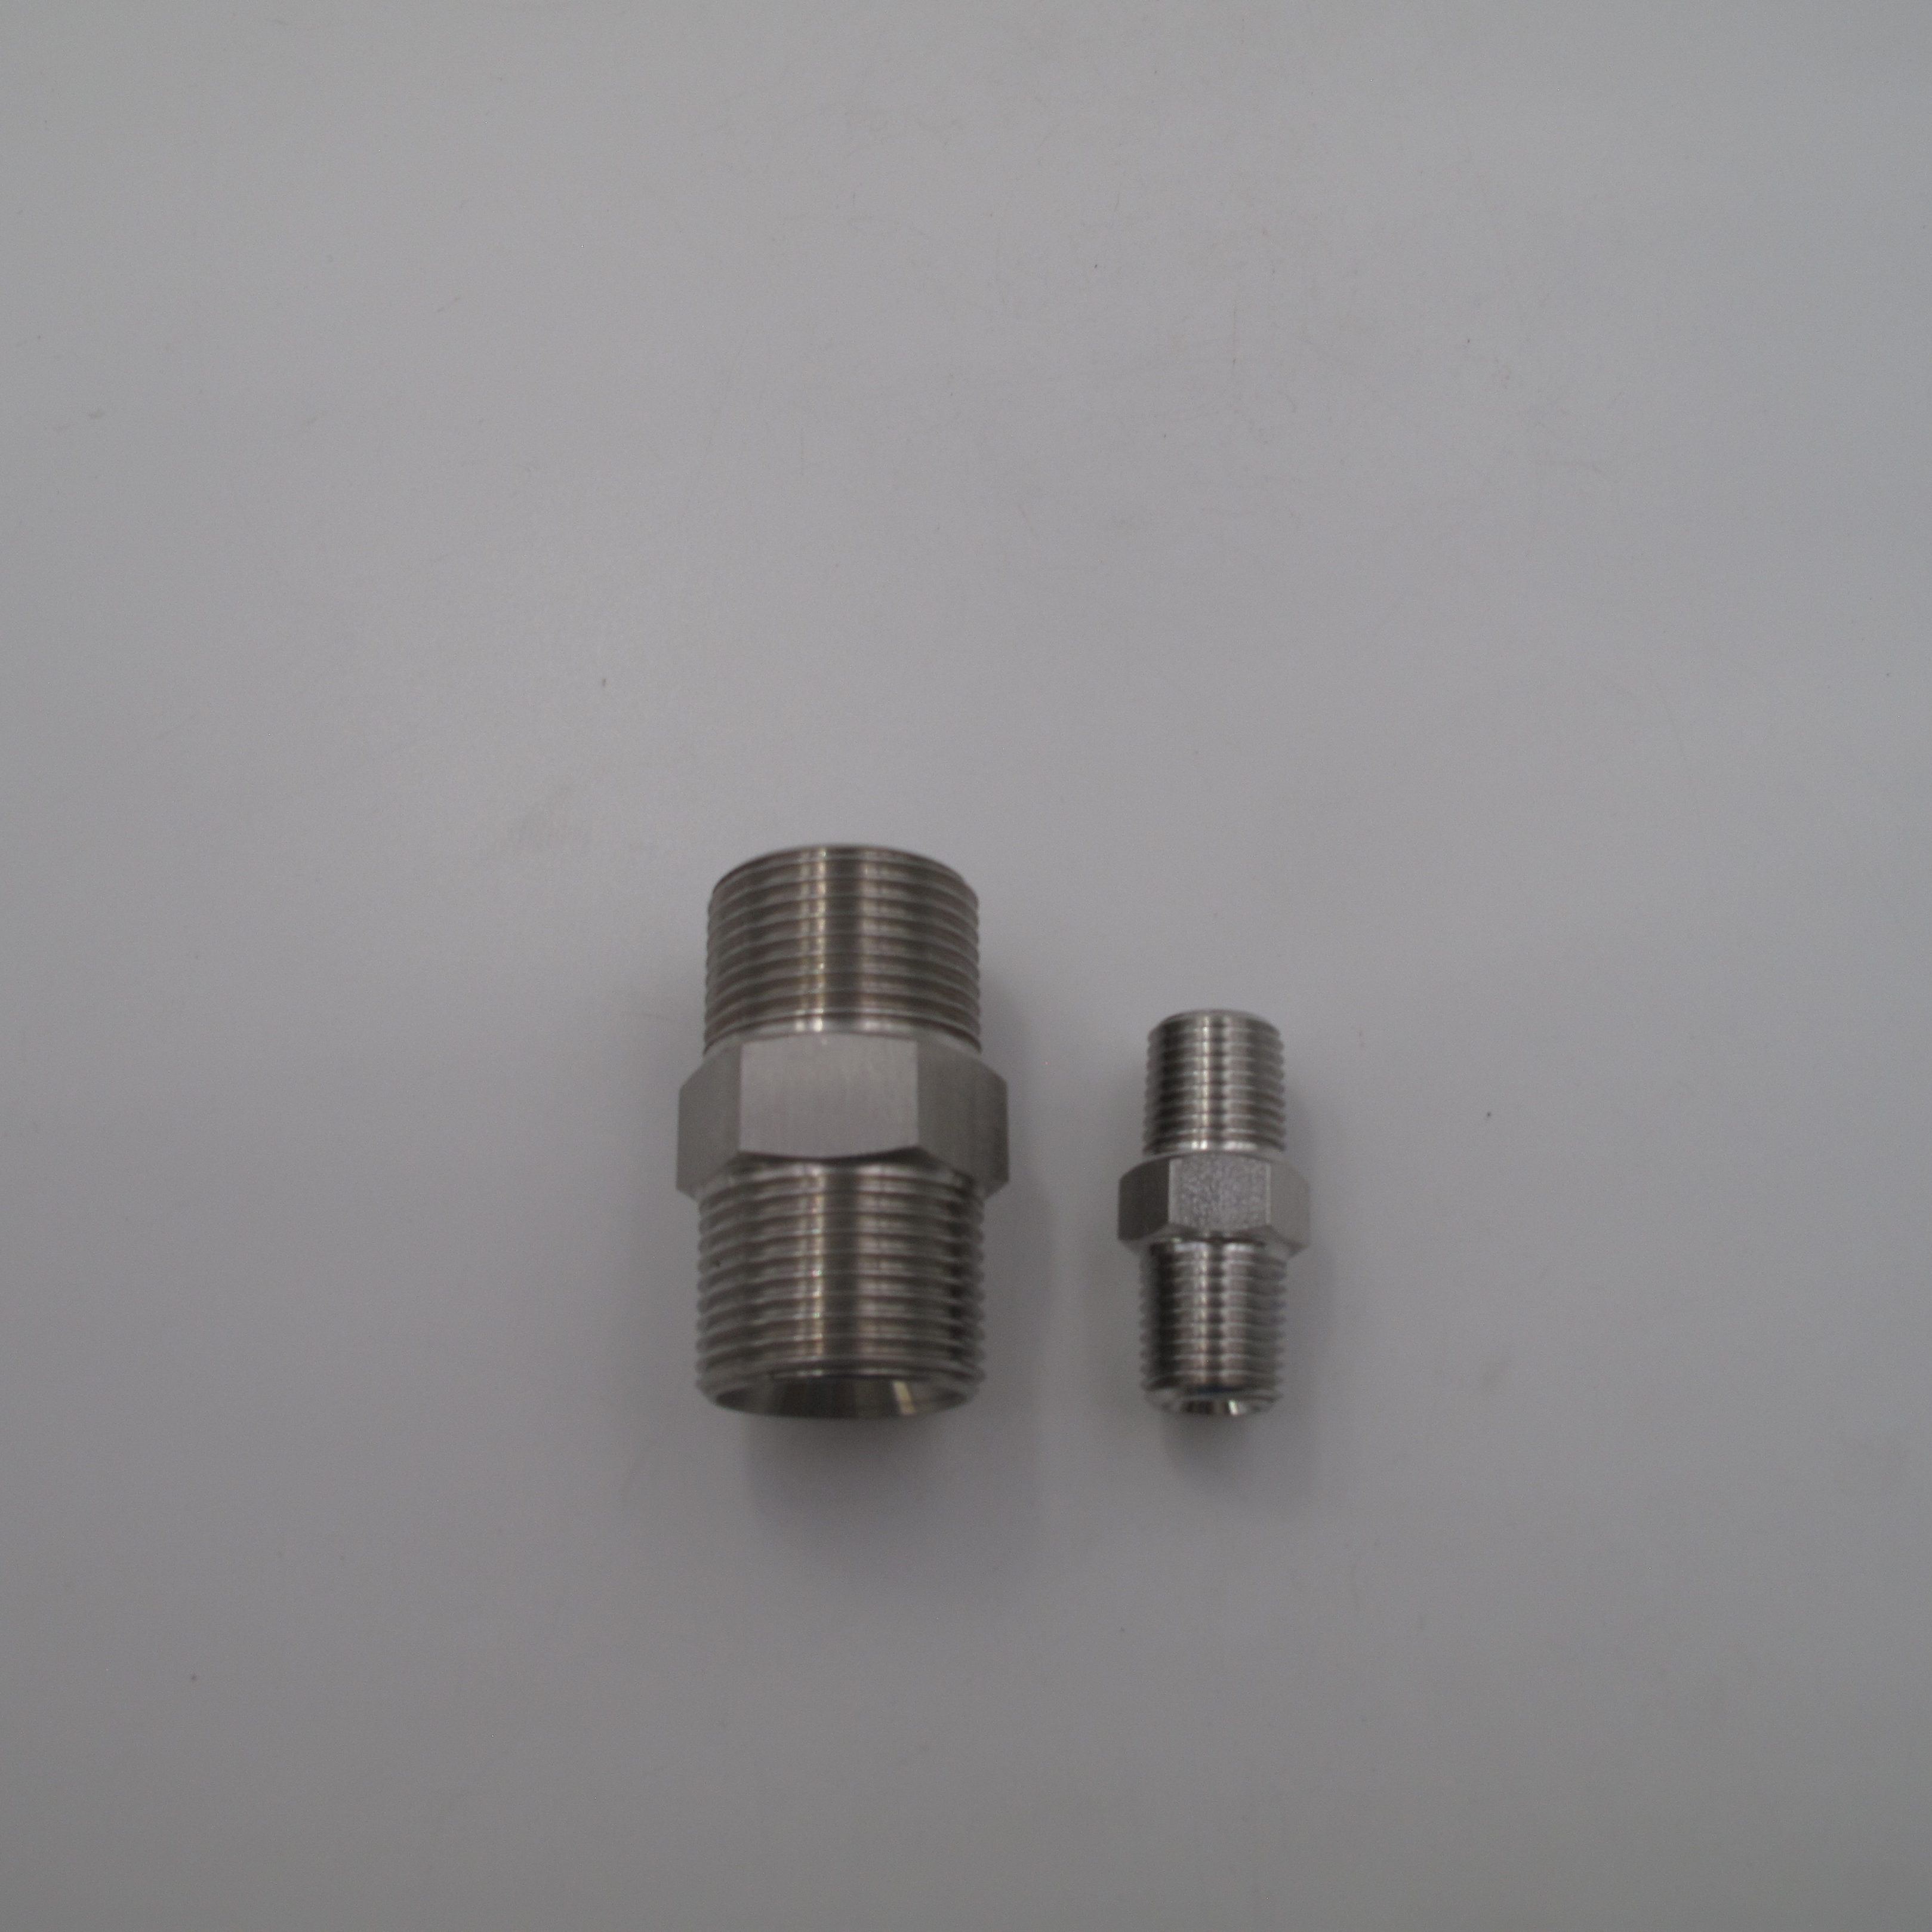 4 Pieces Grease Fitting UNF 10-32 Zerk Nipple Straight Brass